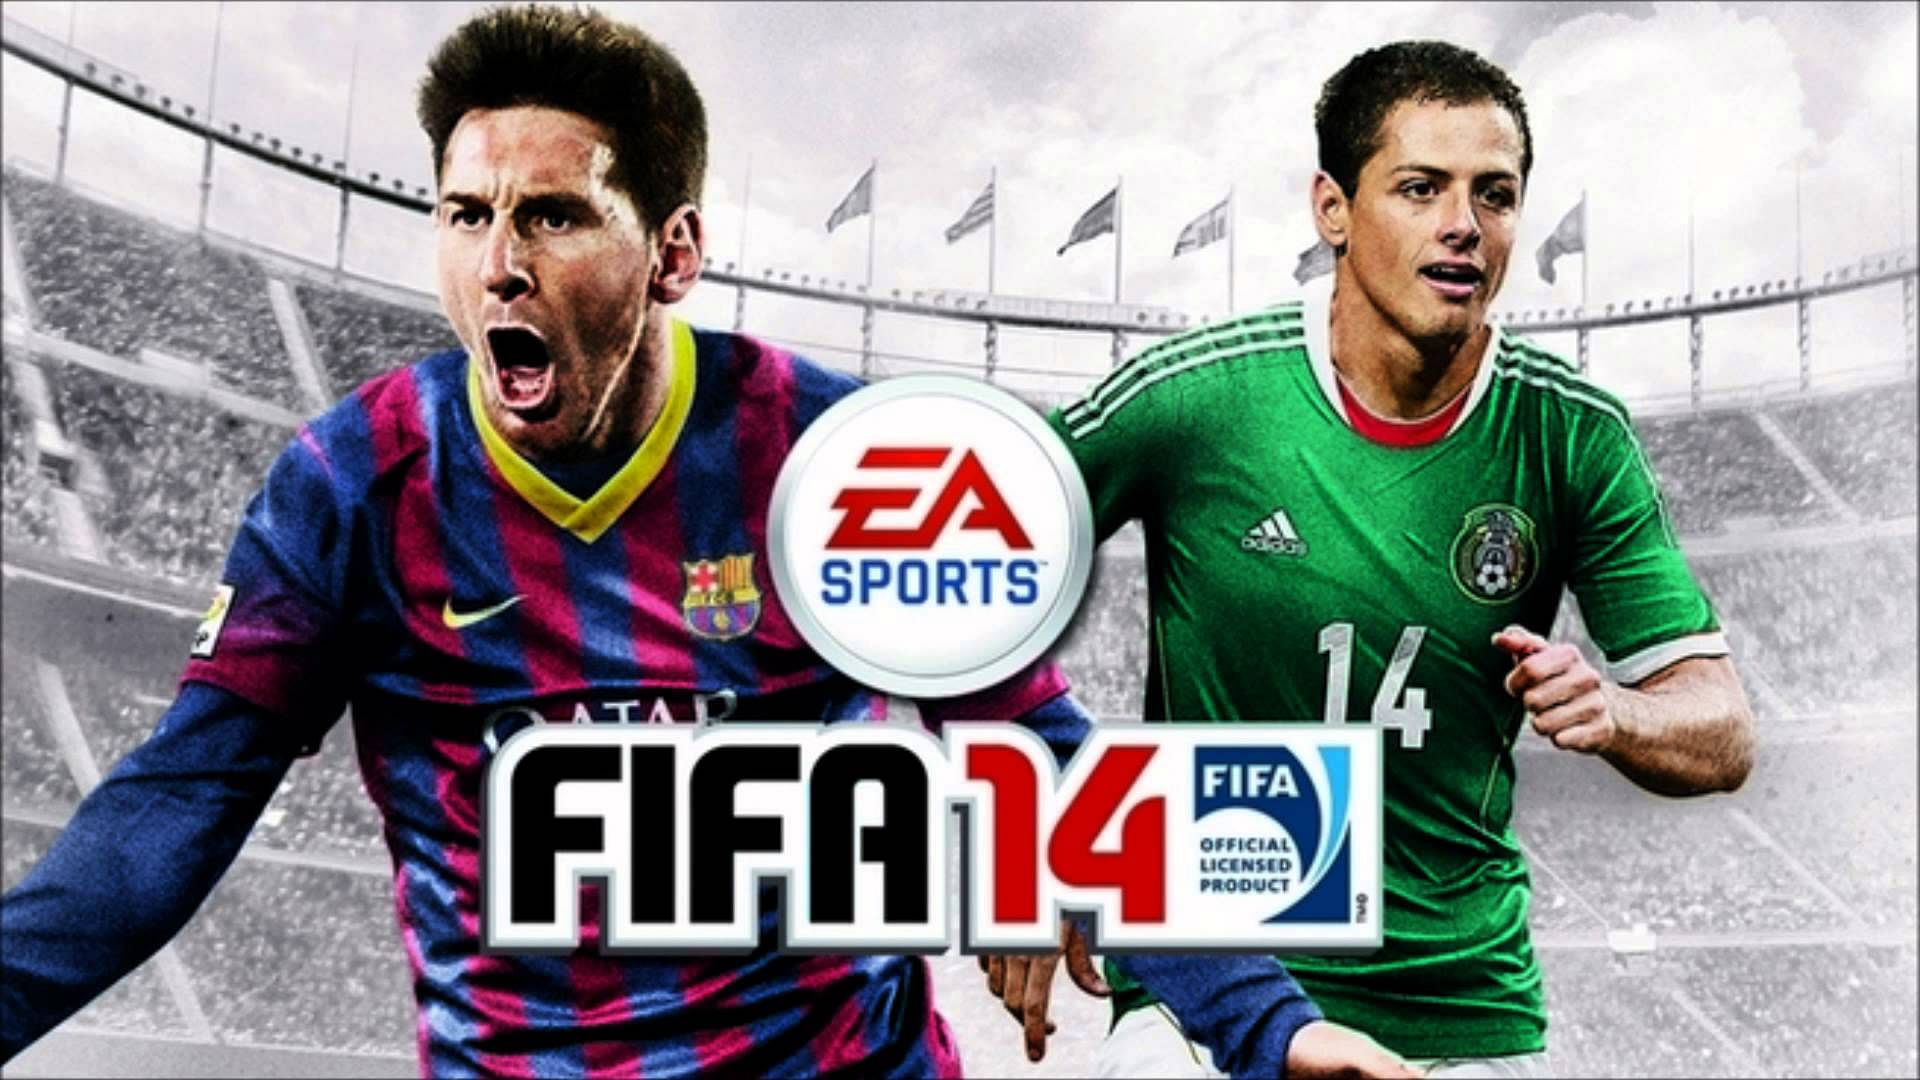 Video: Fifa 14 best goals - Part 3